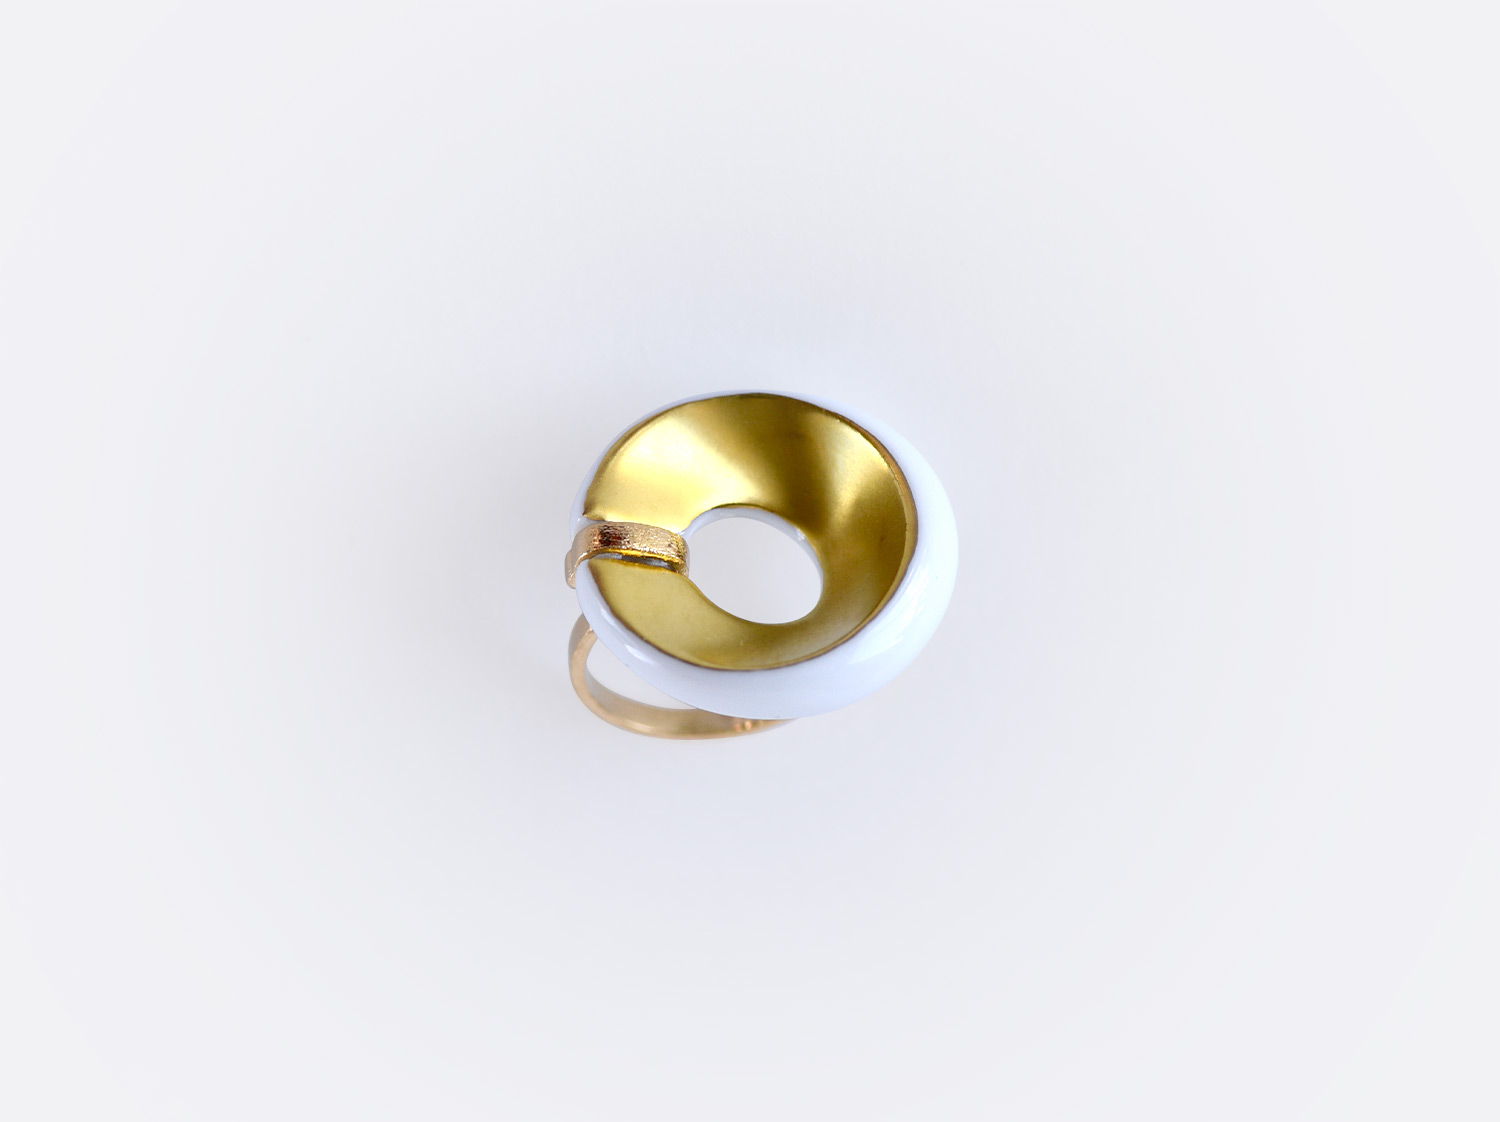 China Alba blanc et or Flat ring of the collection ALBA BLANC ET OR | Bernardaud